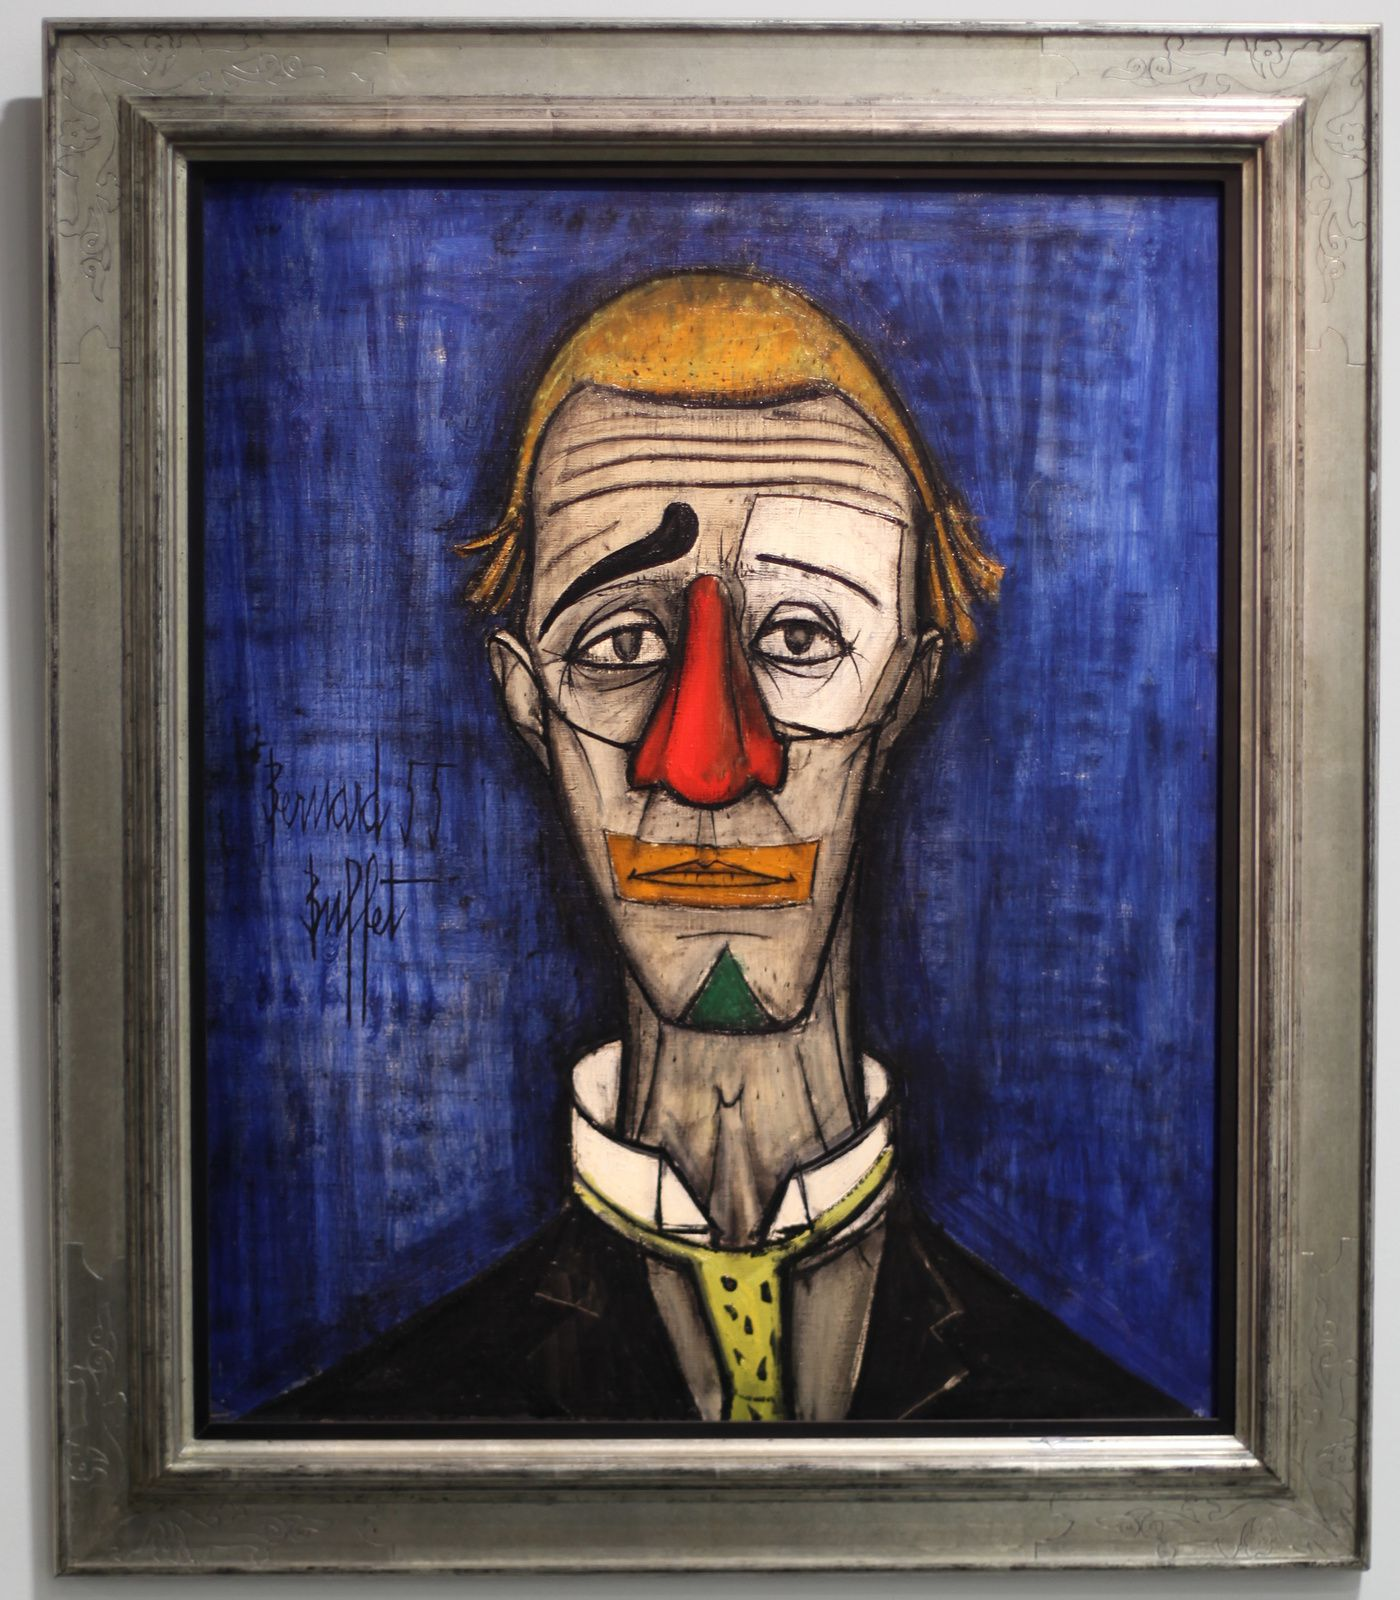 """Tête de Clown"", 1955 de Bernard BUFFET - Courtesy Fonds de dotation B. Buffet © Photo Éric Simon"